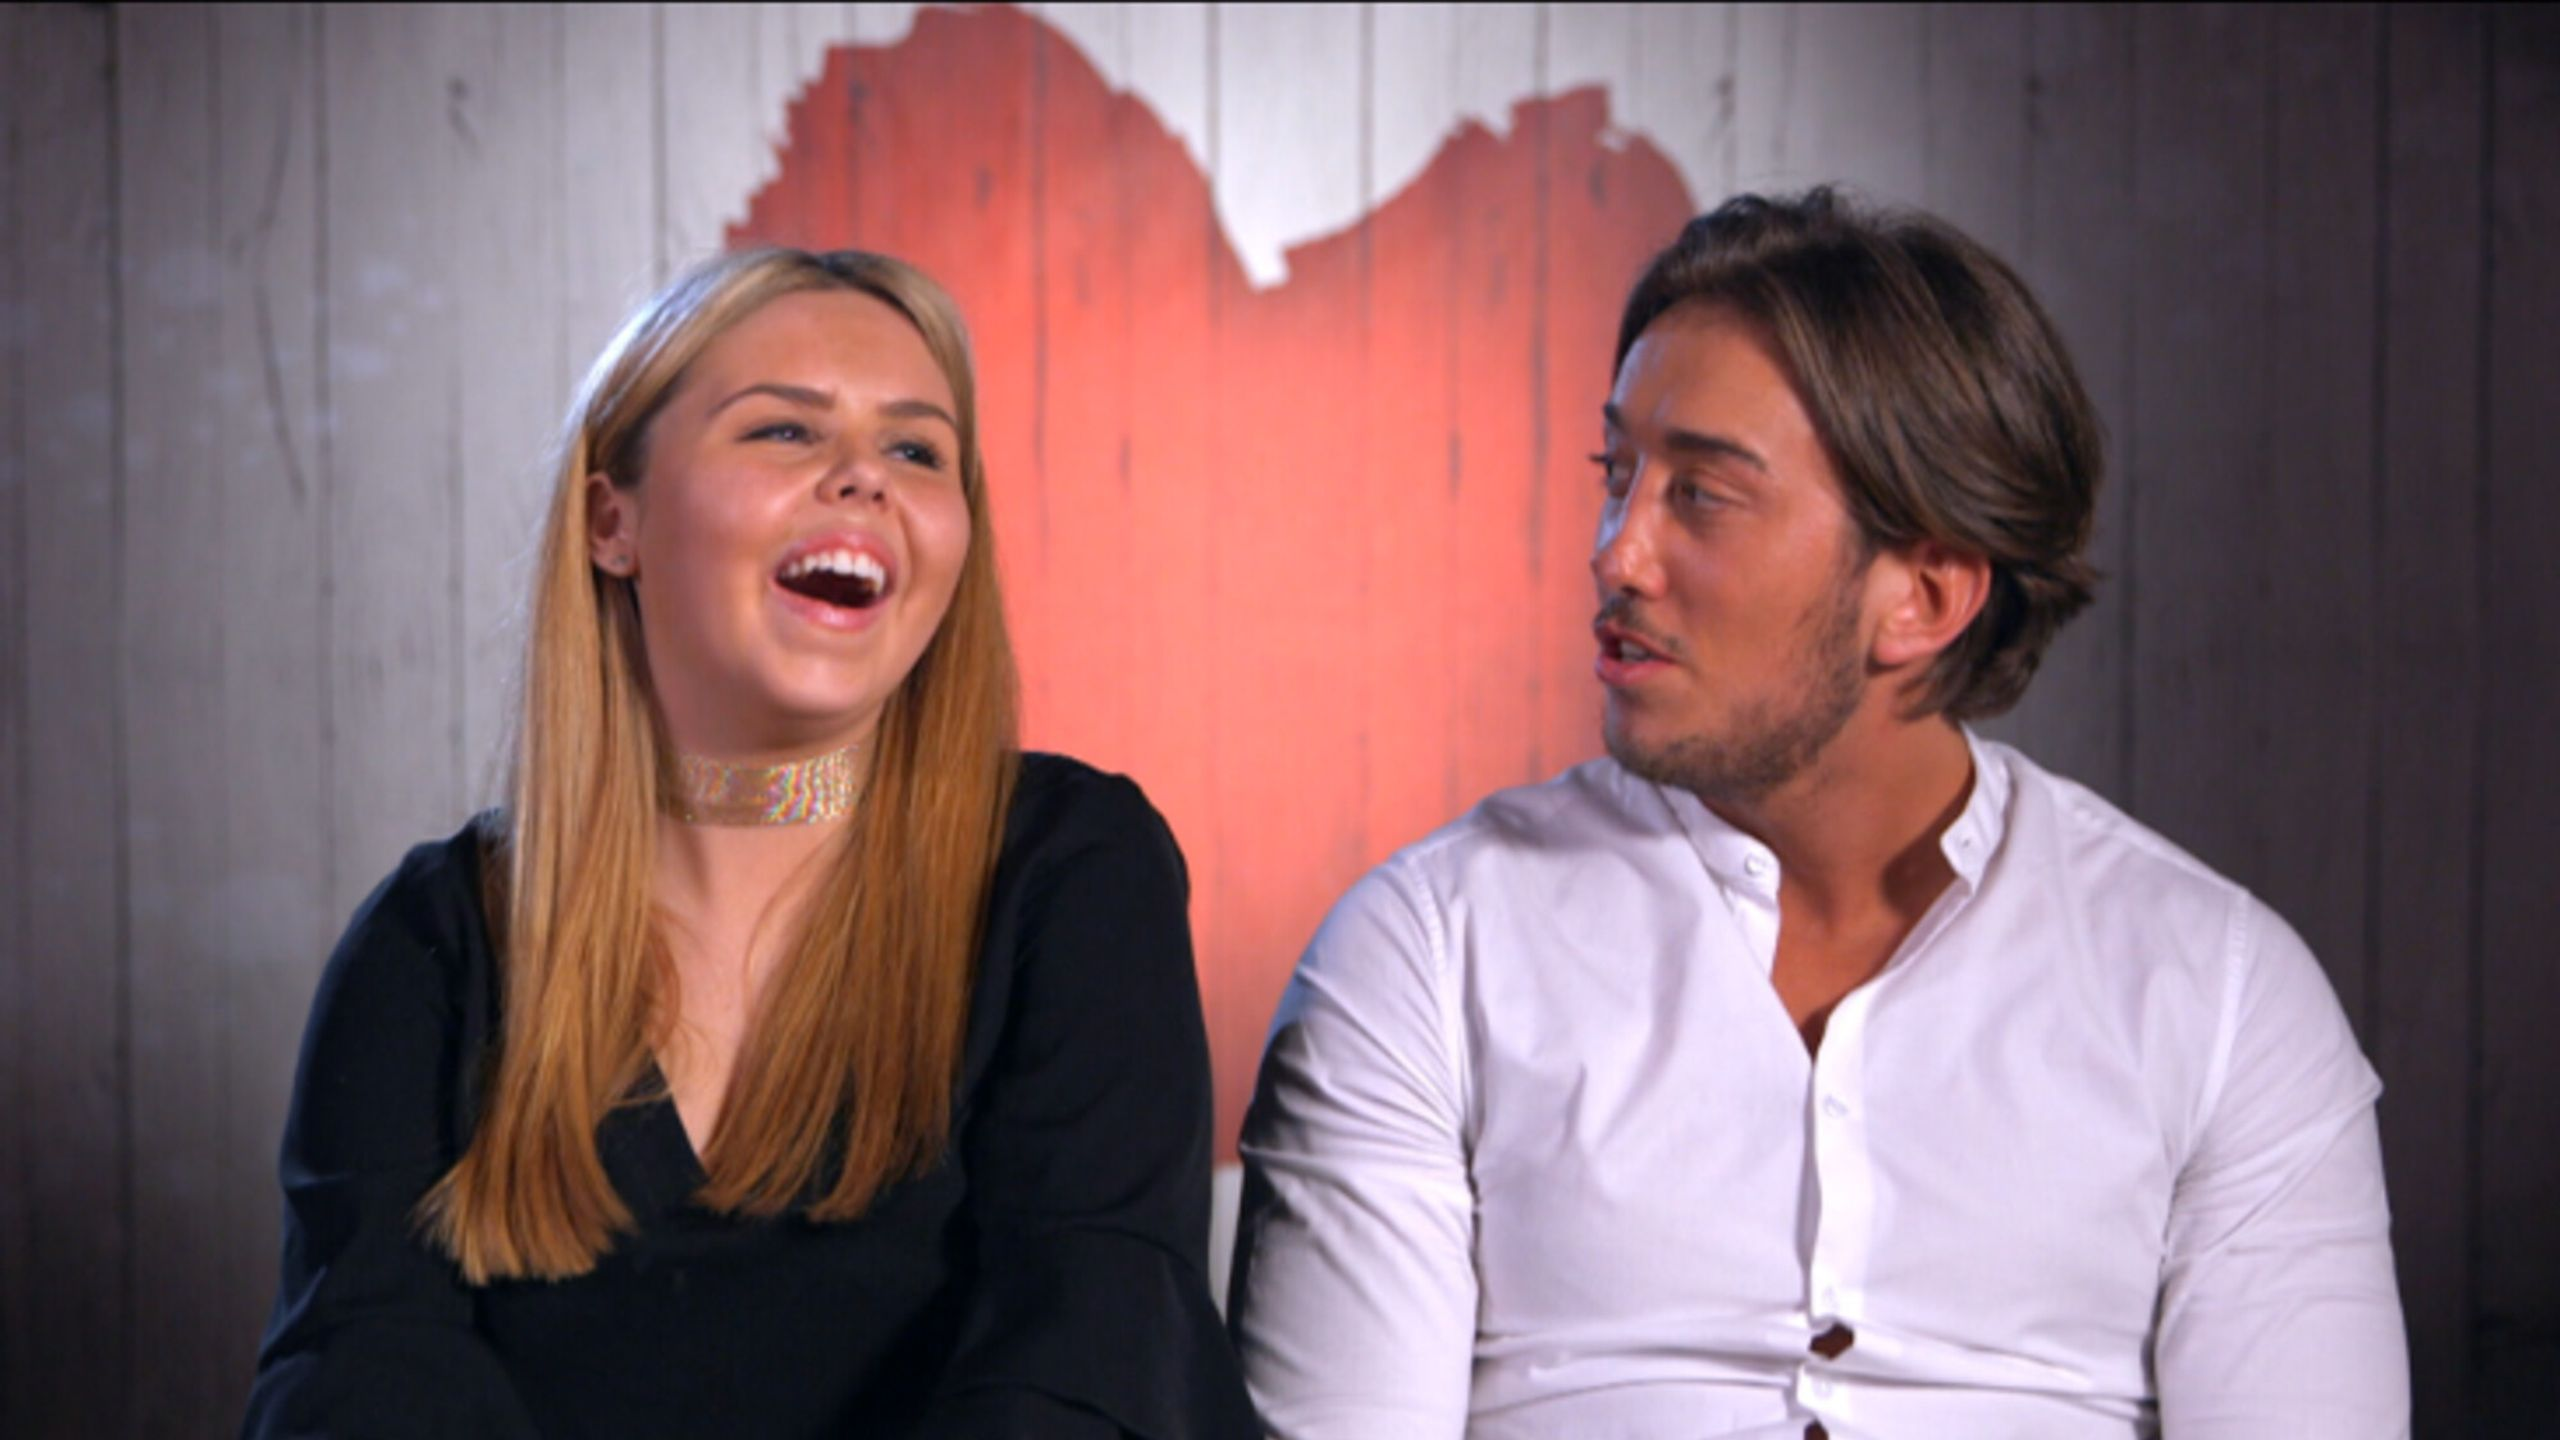 First Dates - Seizoen 18 Afl. 11 - Aflevering 11